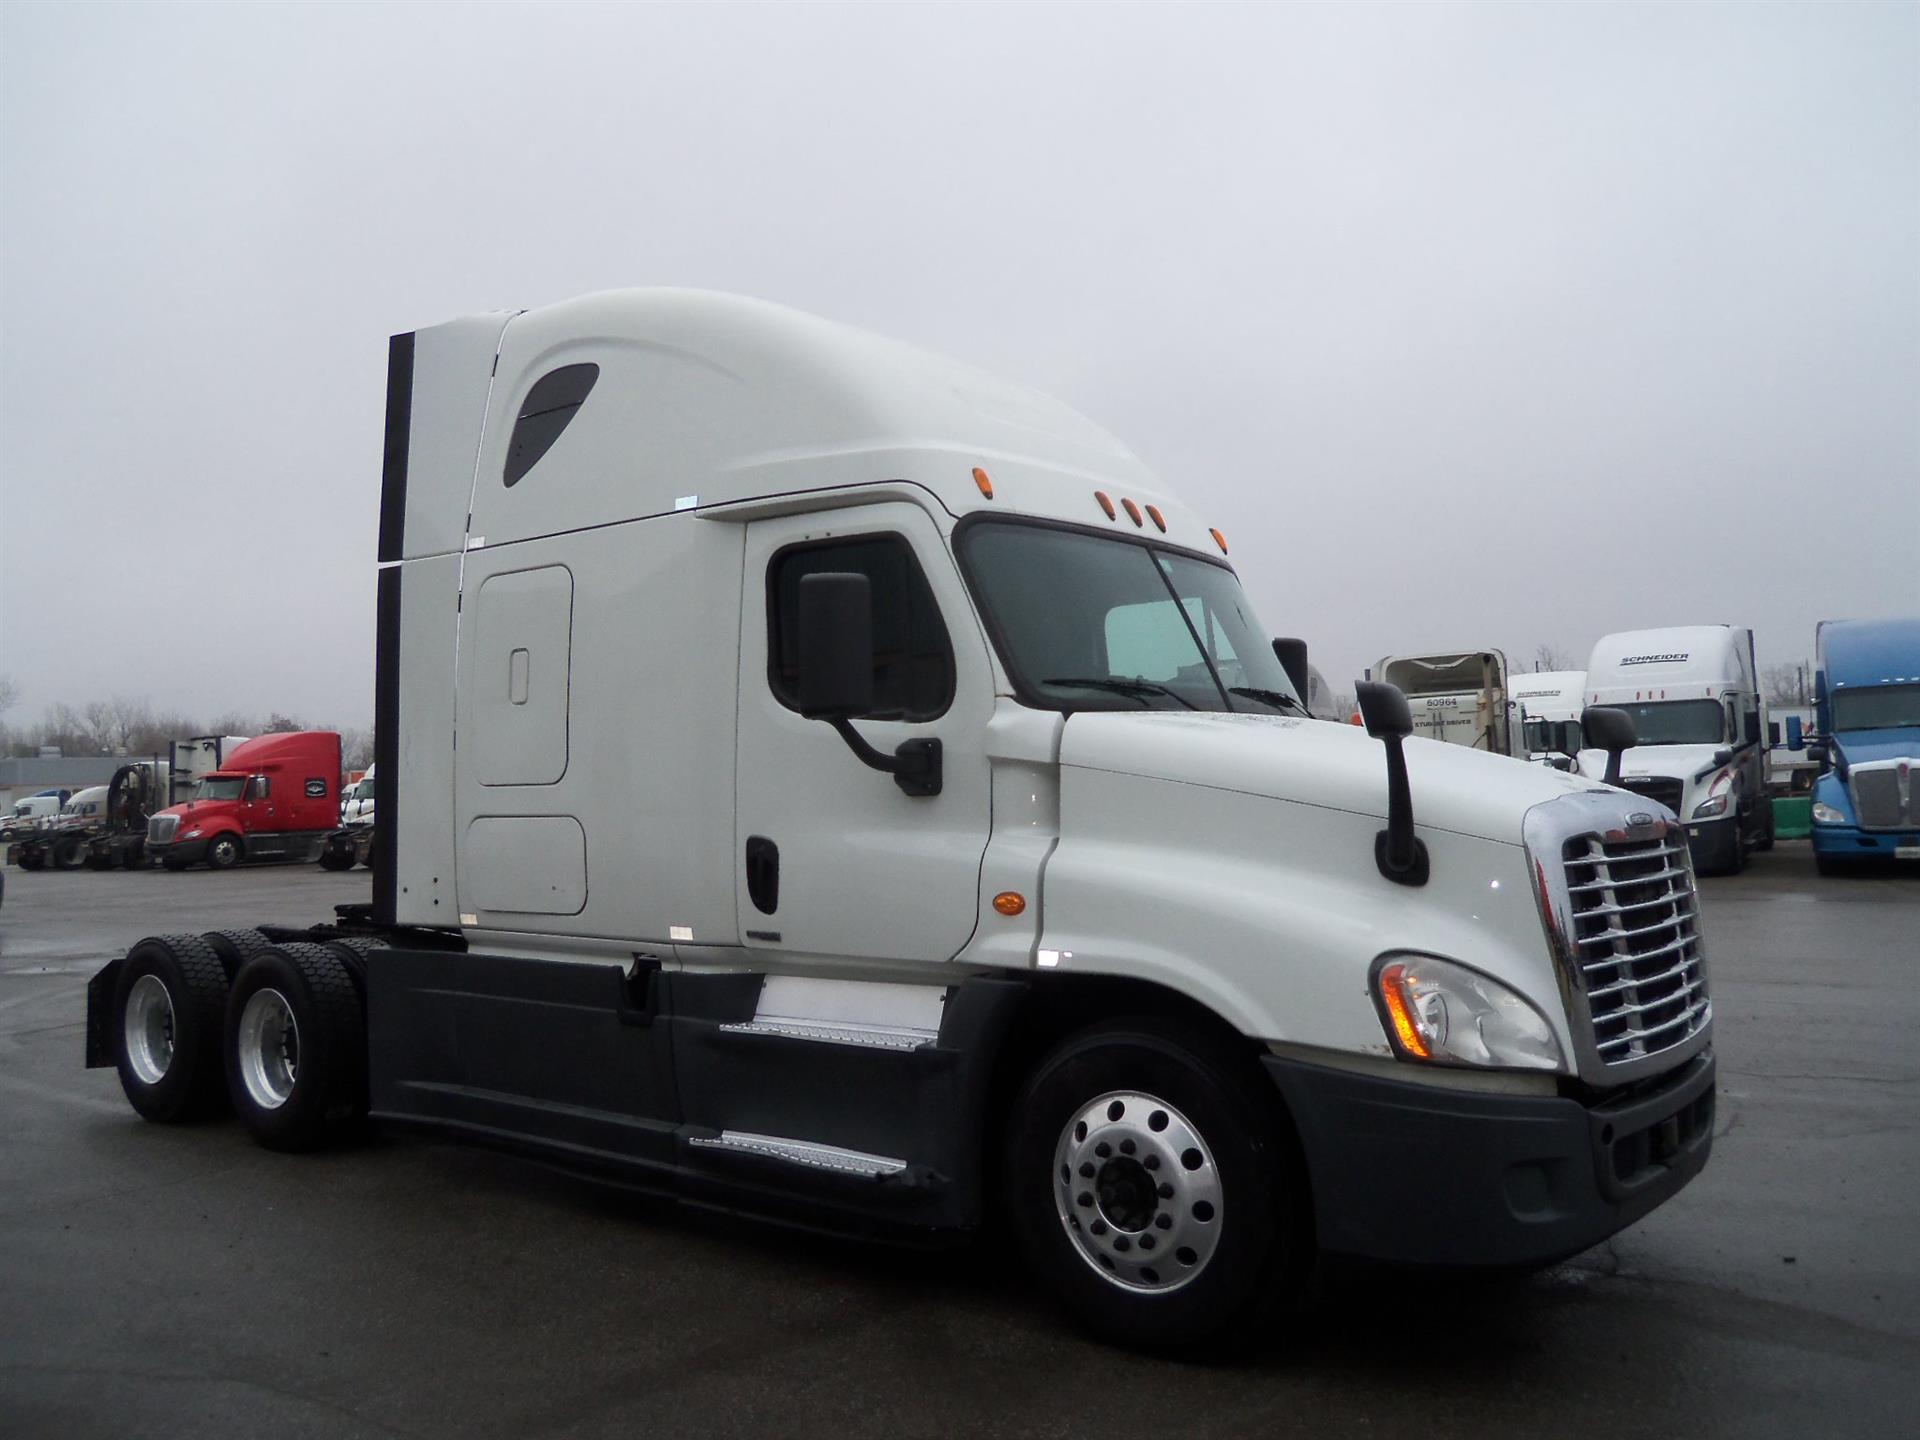 USED 2015 FREIGHTLINER CASCADIA SLEEPER TRUCK #138496